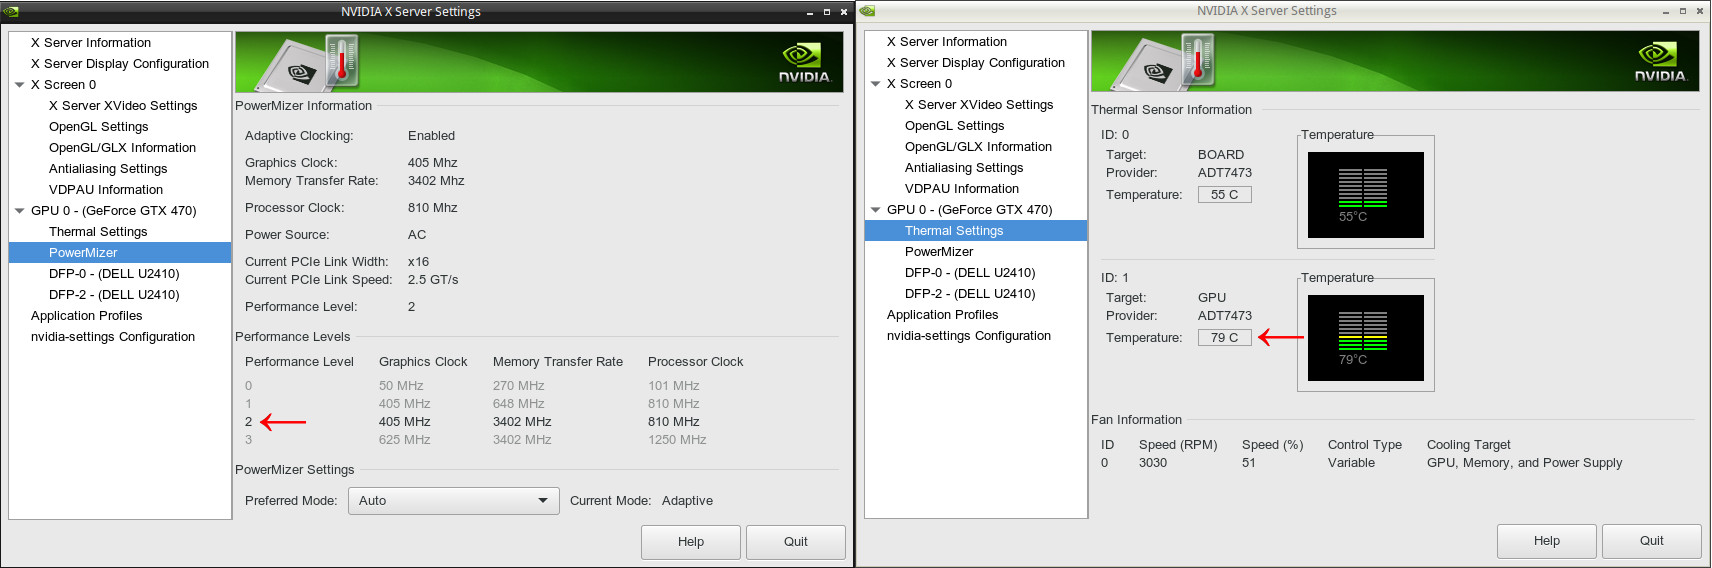 NVIDIA Linux drivers, PowerMizer, Coolbits, Performance